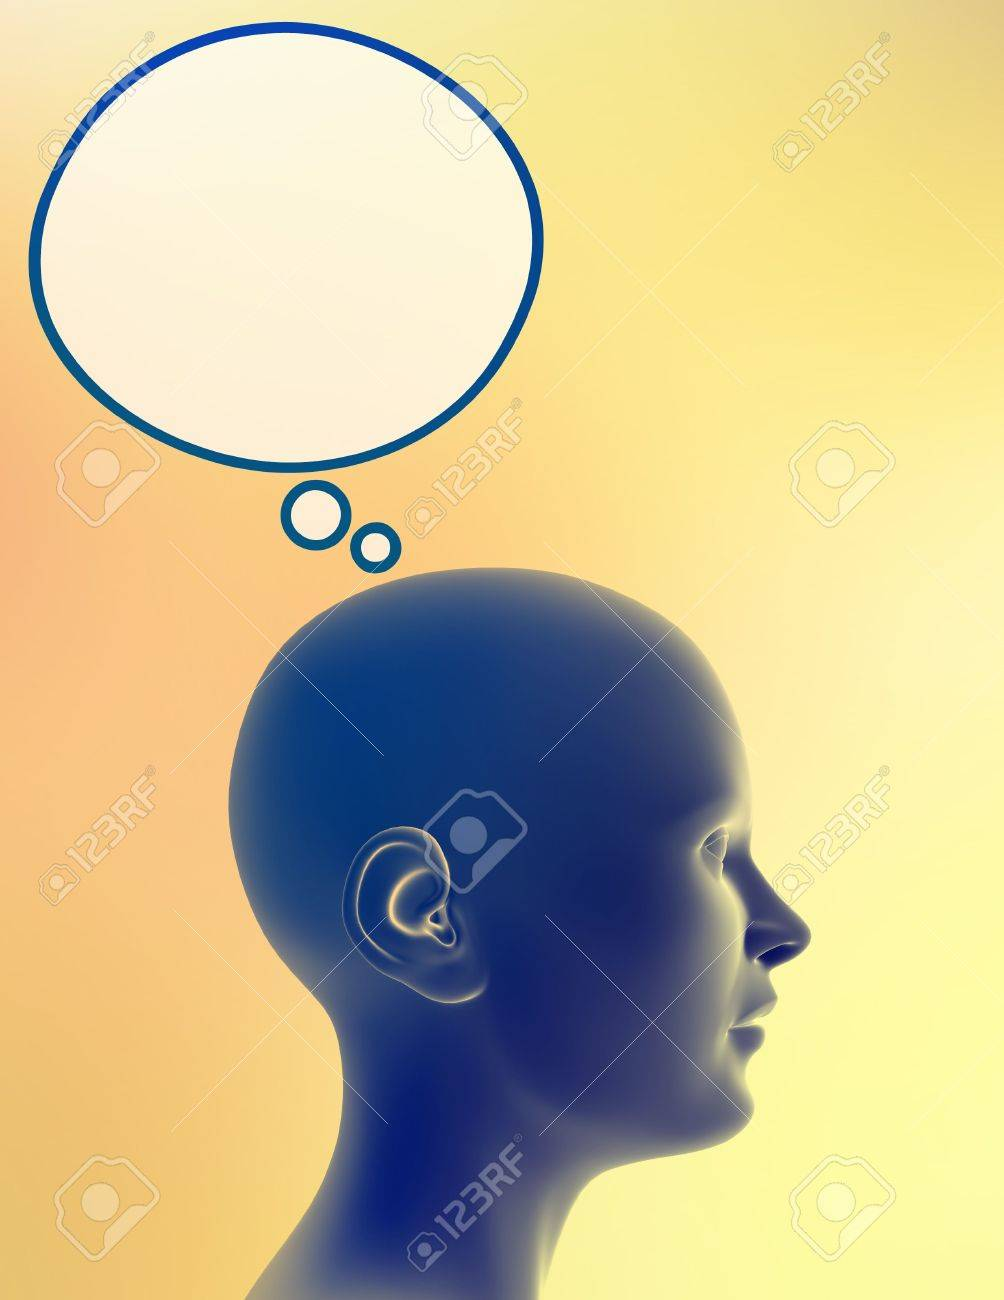 Woman alone, with bubble for thoughts above her head. Just add your text or image to the bubble. Stock Photo - 282449